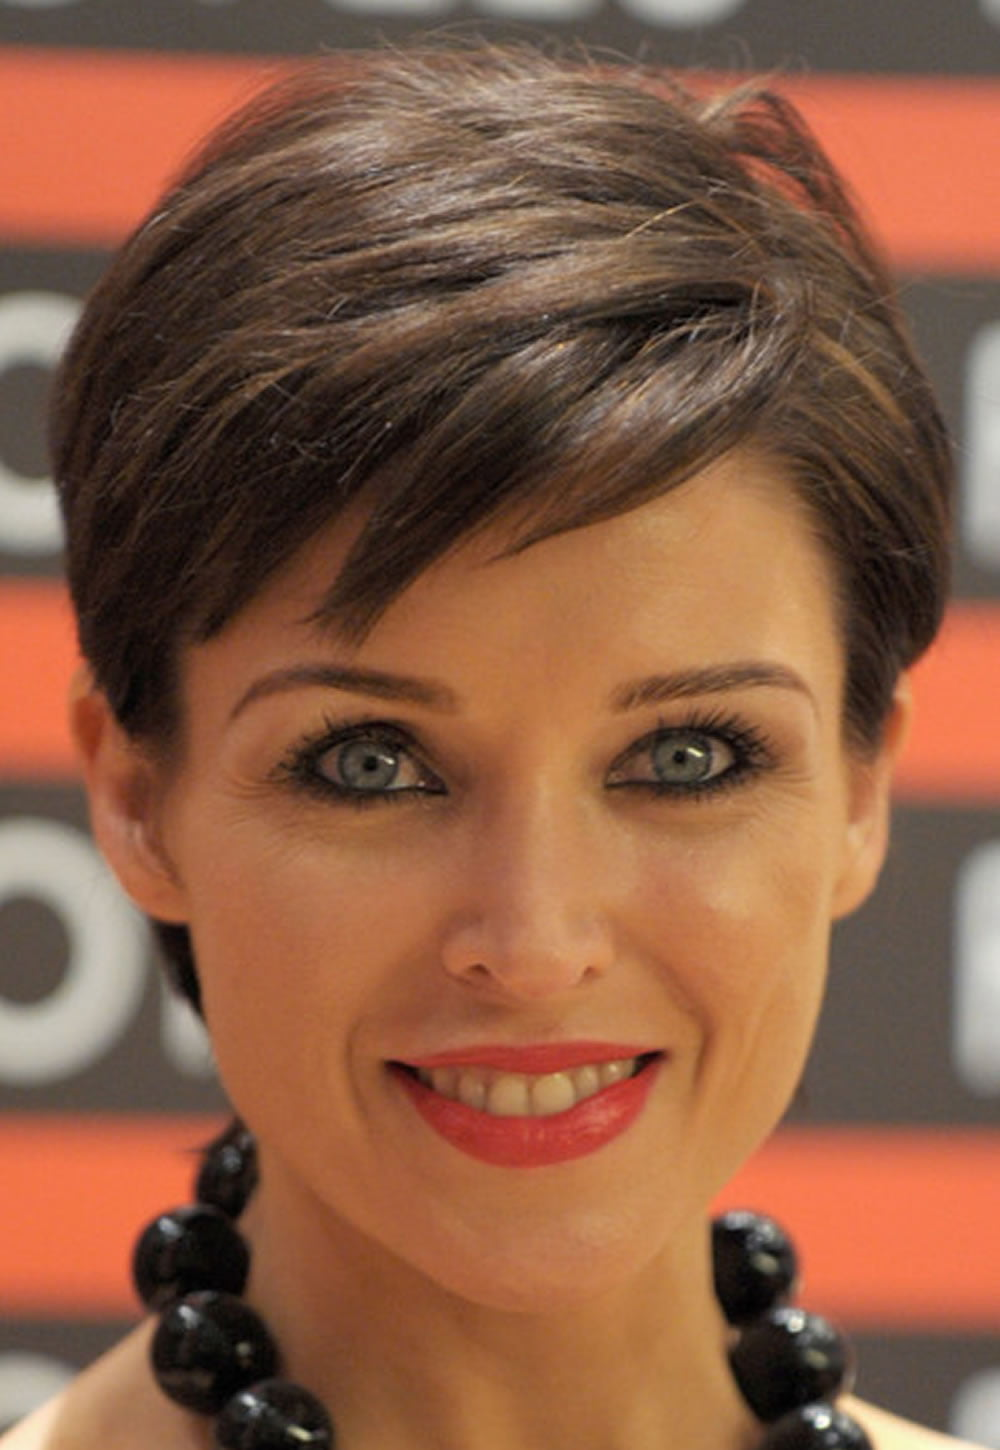 Pixie Short Haircuts And Hairstyle Ideas From Celebrity Ladies